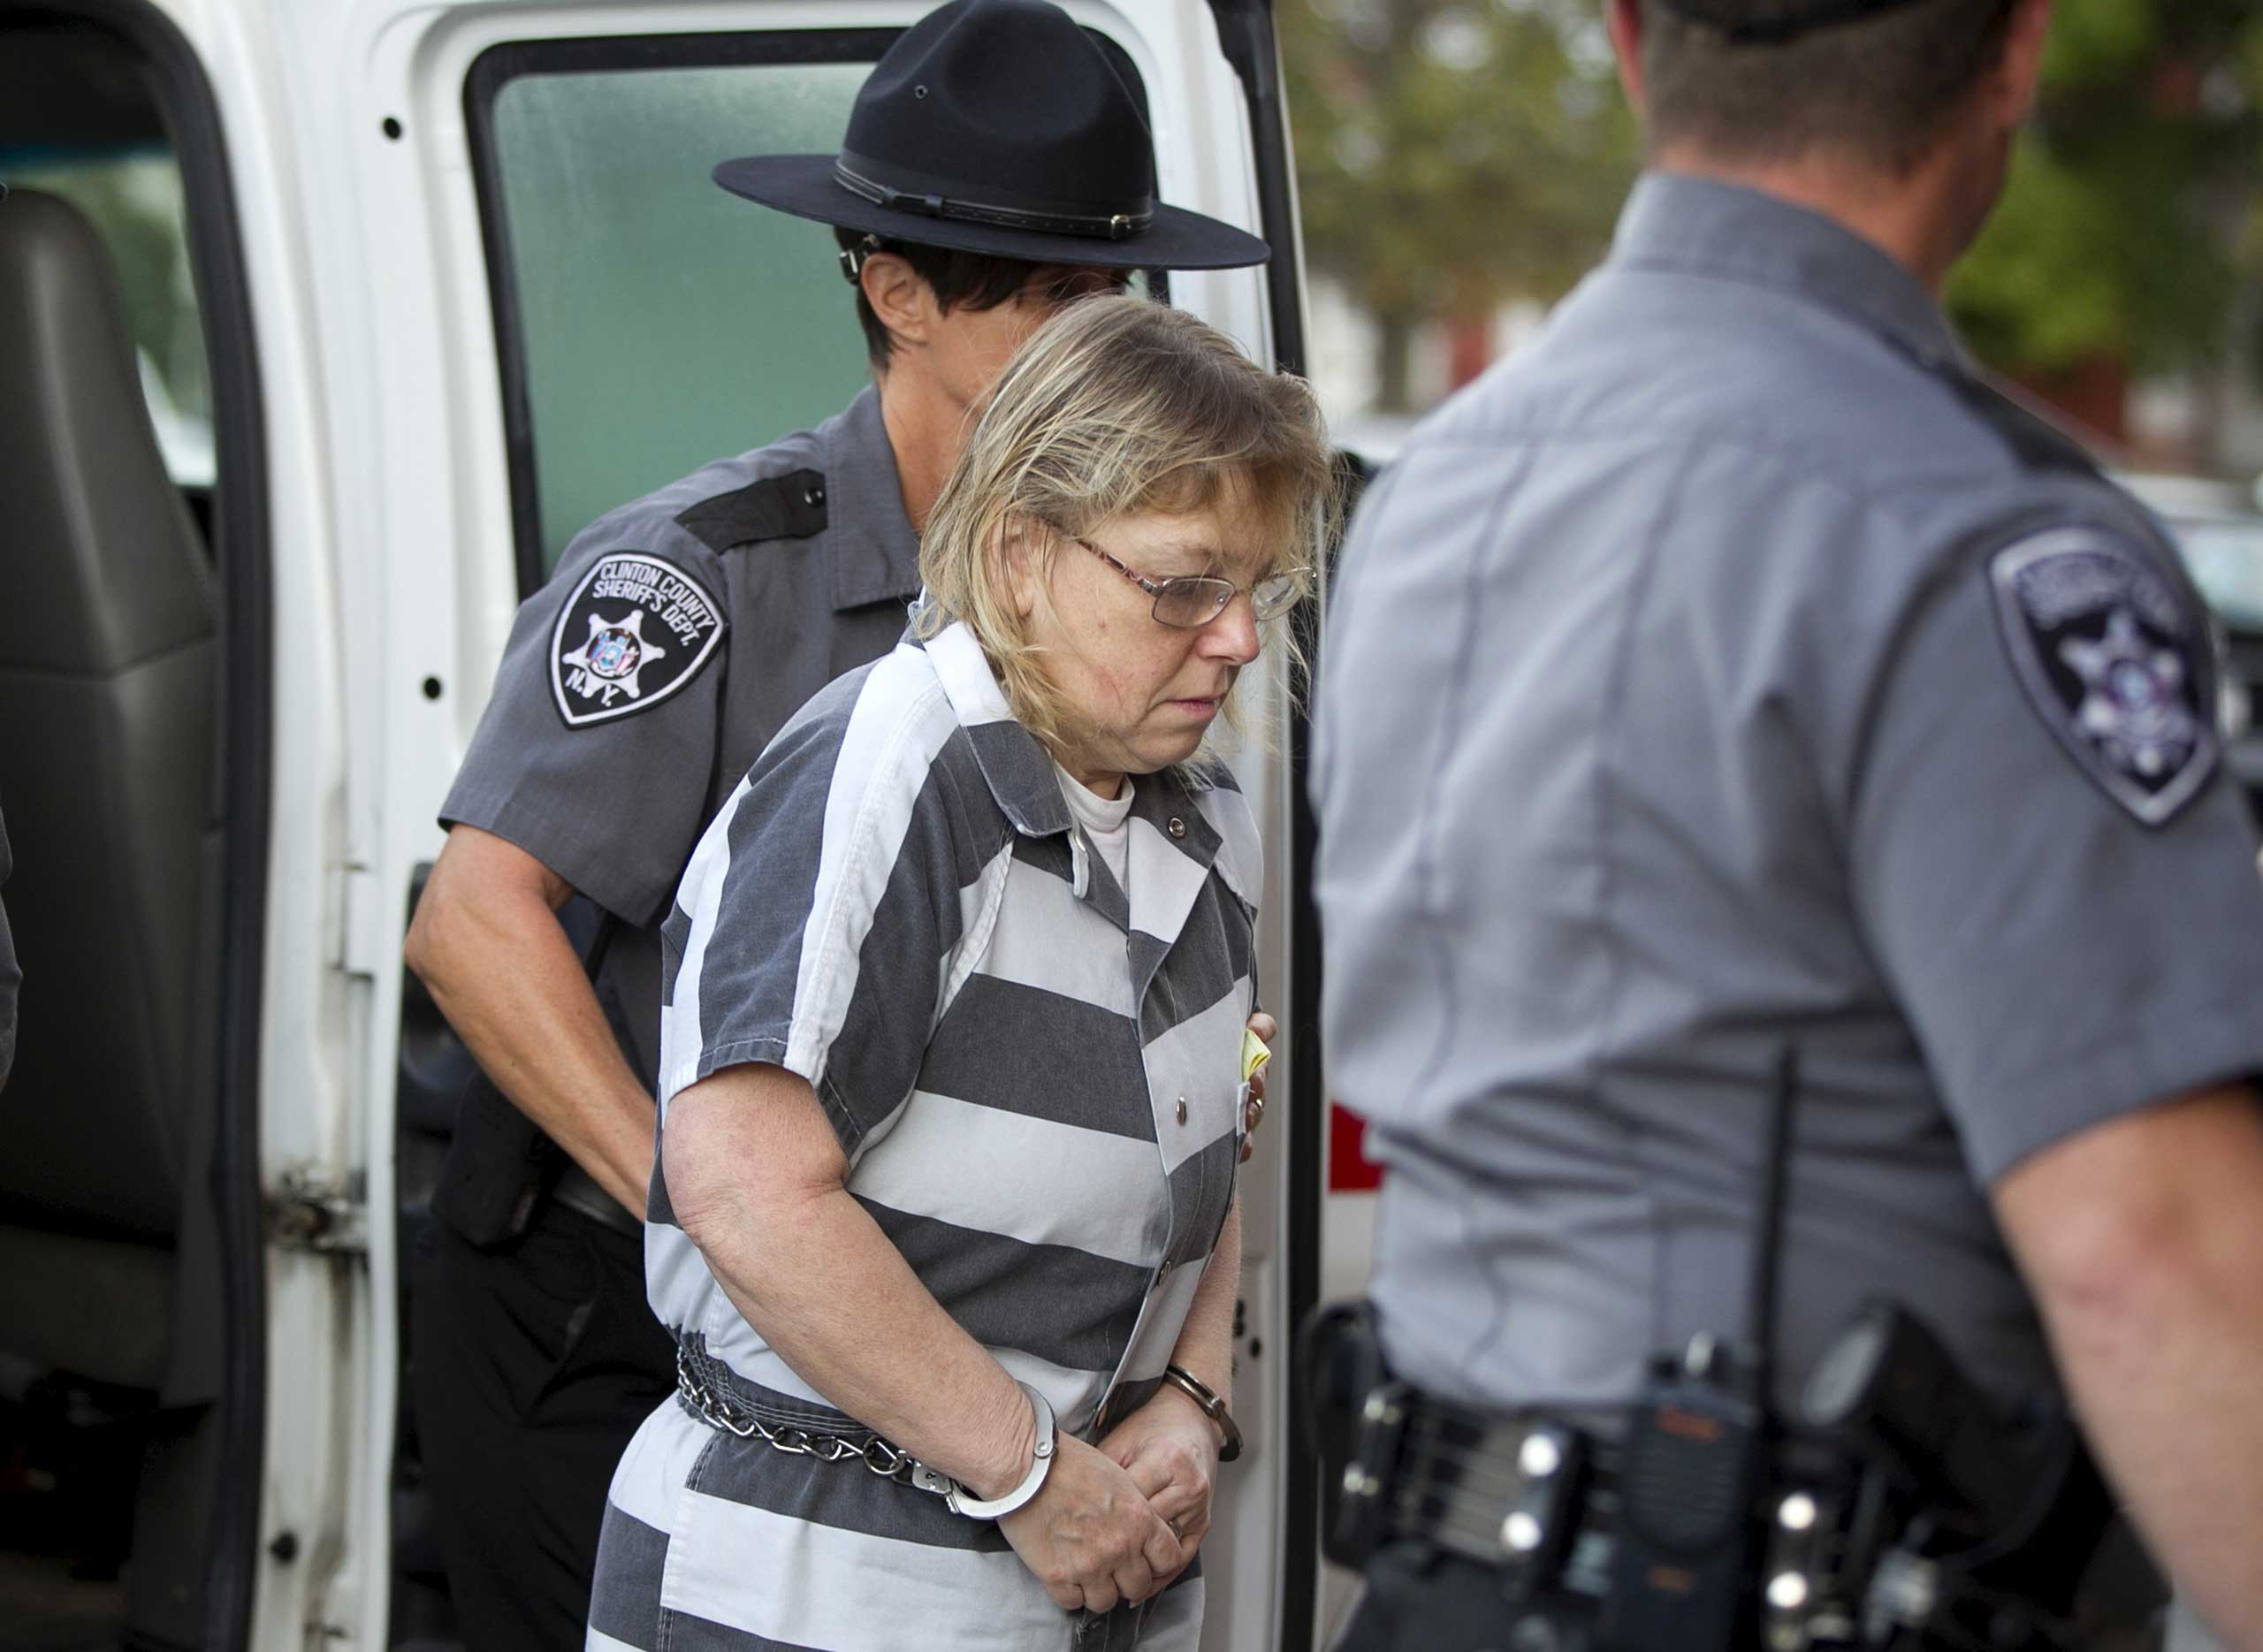 Joyce Mitchell arrives for sentencing at Clinton County Court, in Plattsburgh, New York Sept. 28, 2015.